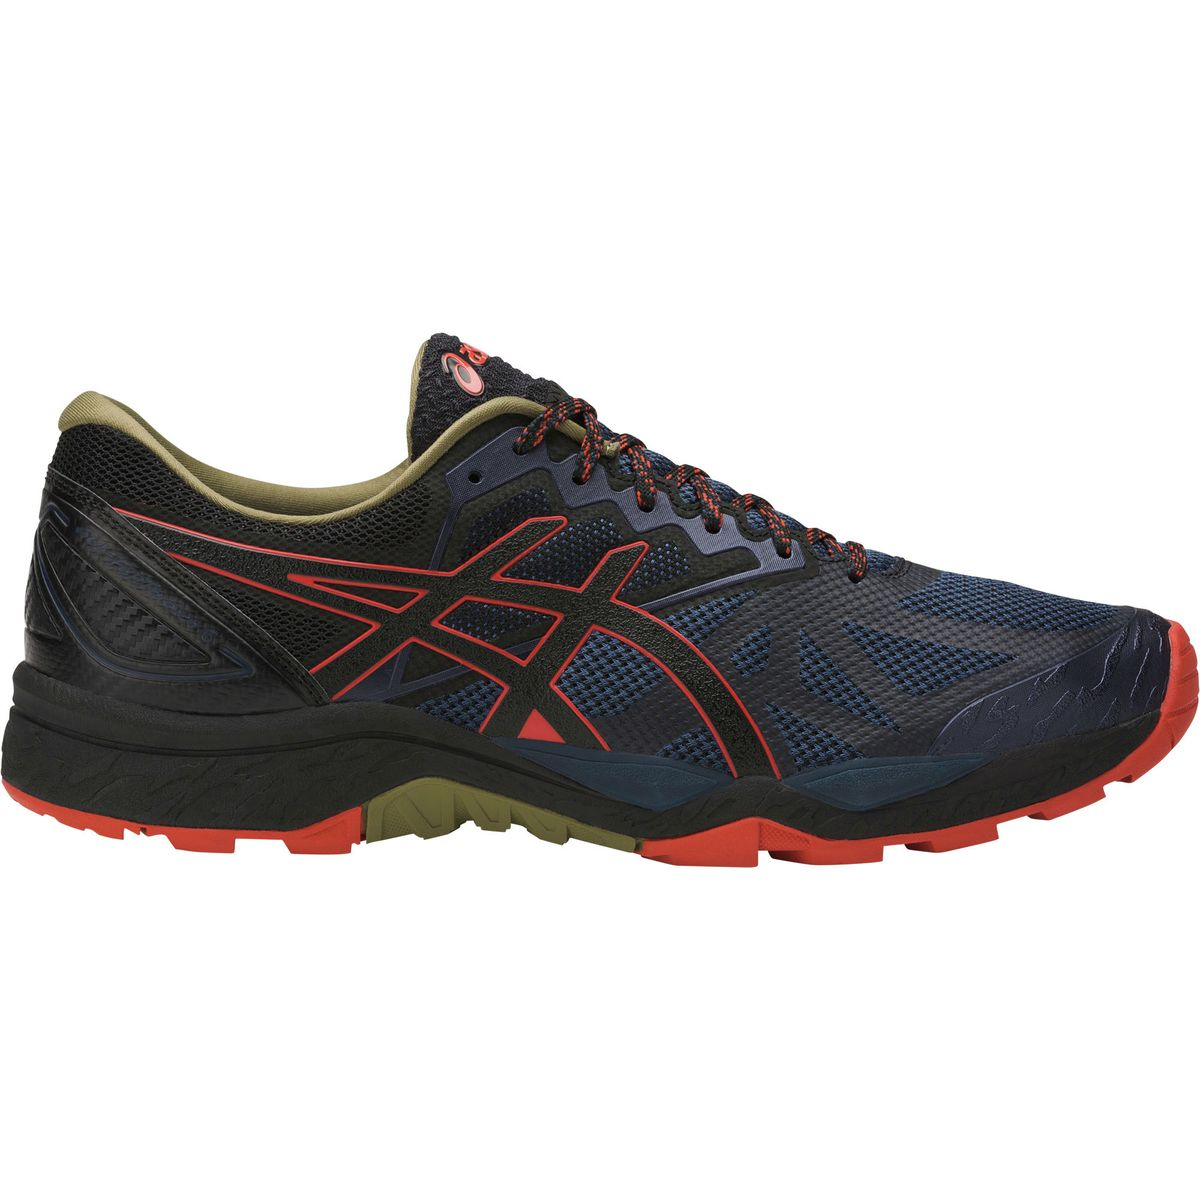 Asics Gel Fujitrabuco 6 Trail Running Shoe Mens Asc00mx